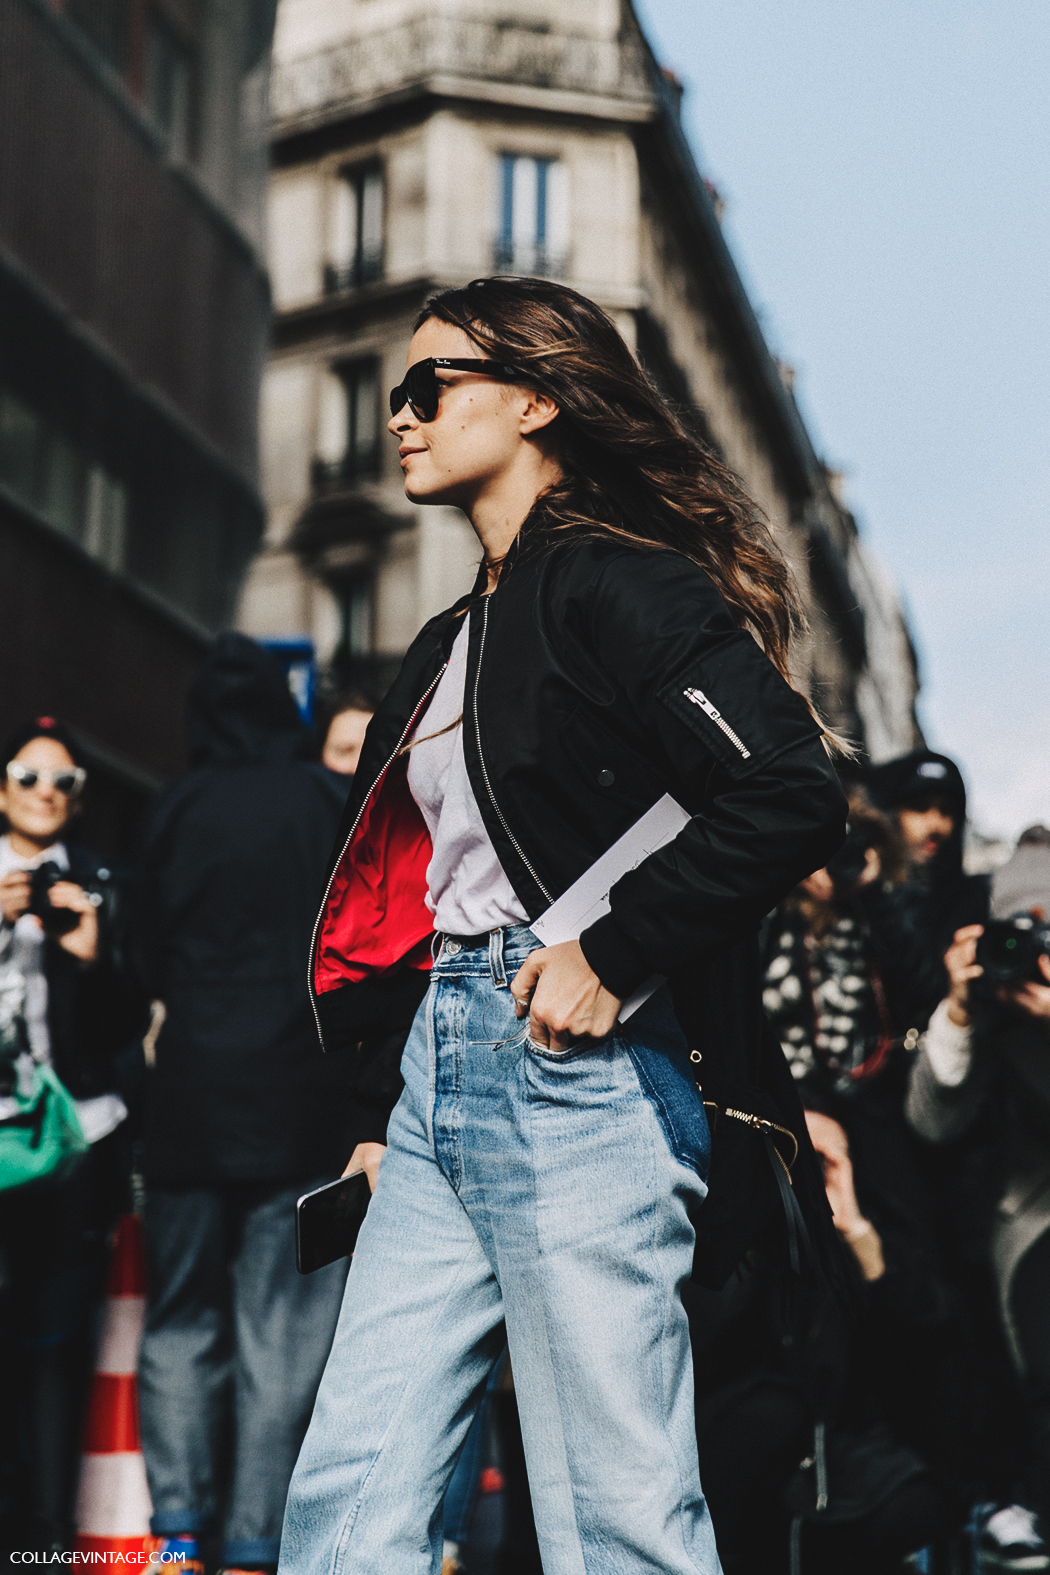 PFW-Paris_Fashion_Week_Fall_2016-Street_Style-Collage_Vintage-Miroslava_Duma-Vetements-Jeans-Backpack-Bomber-10